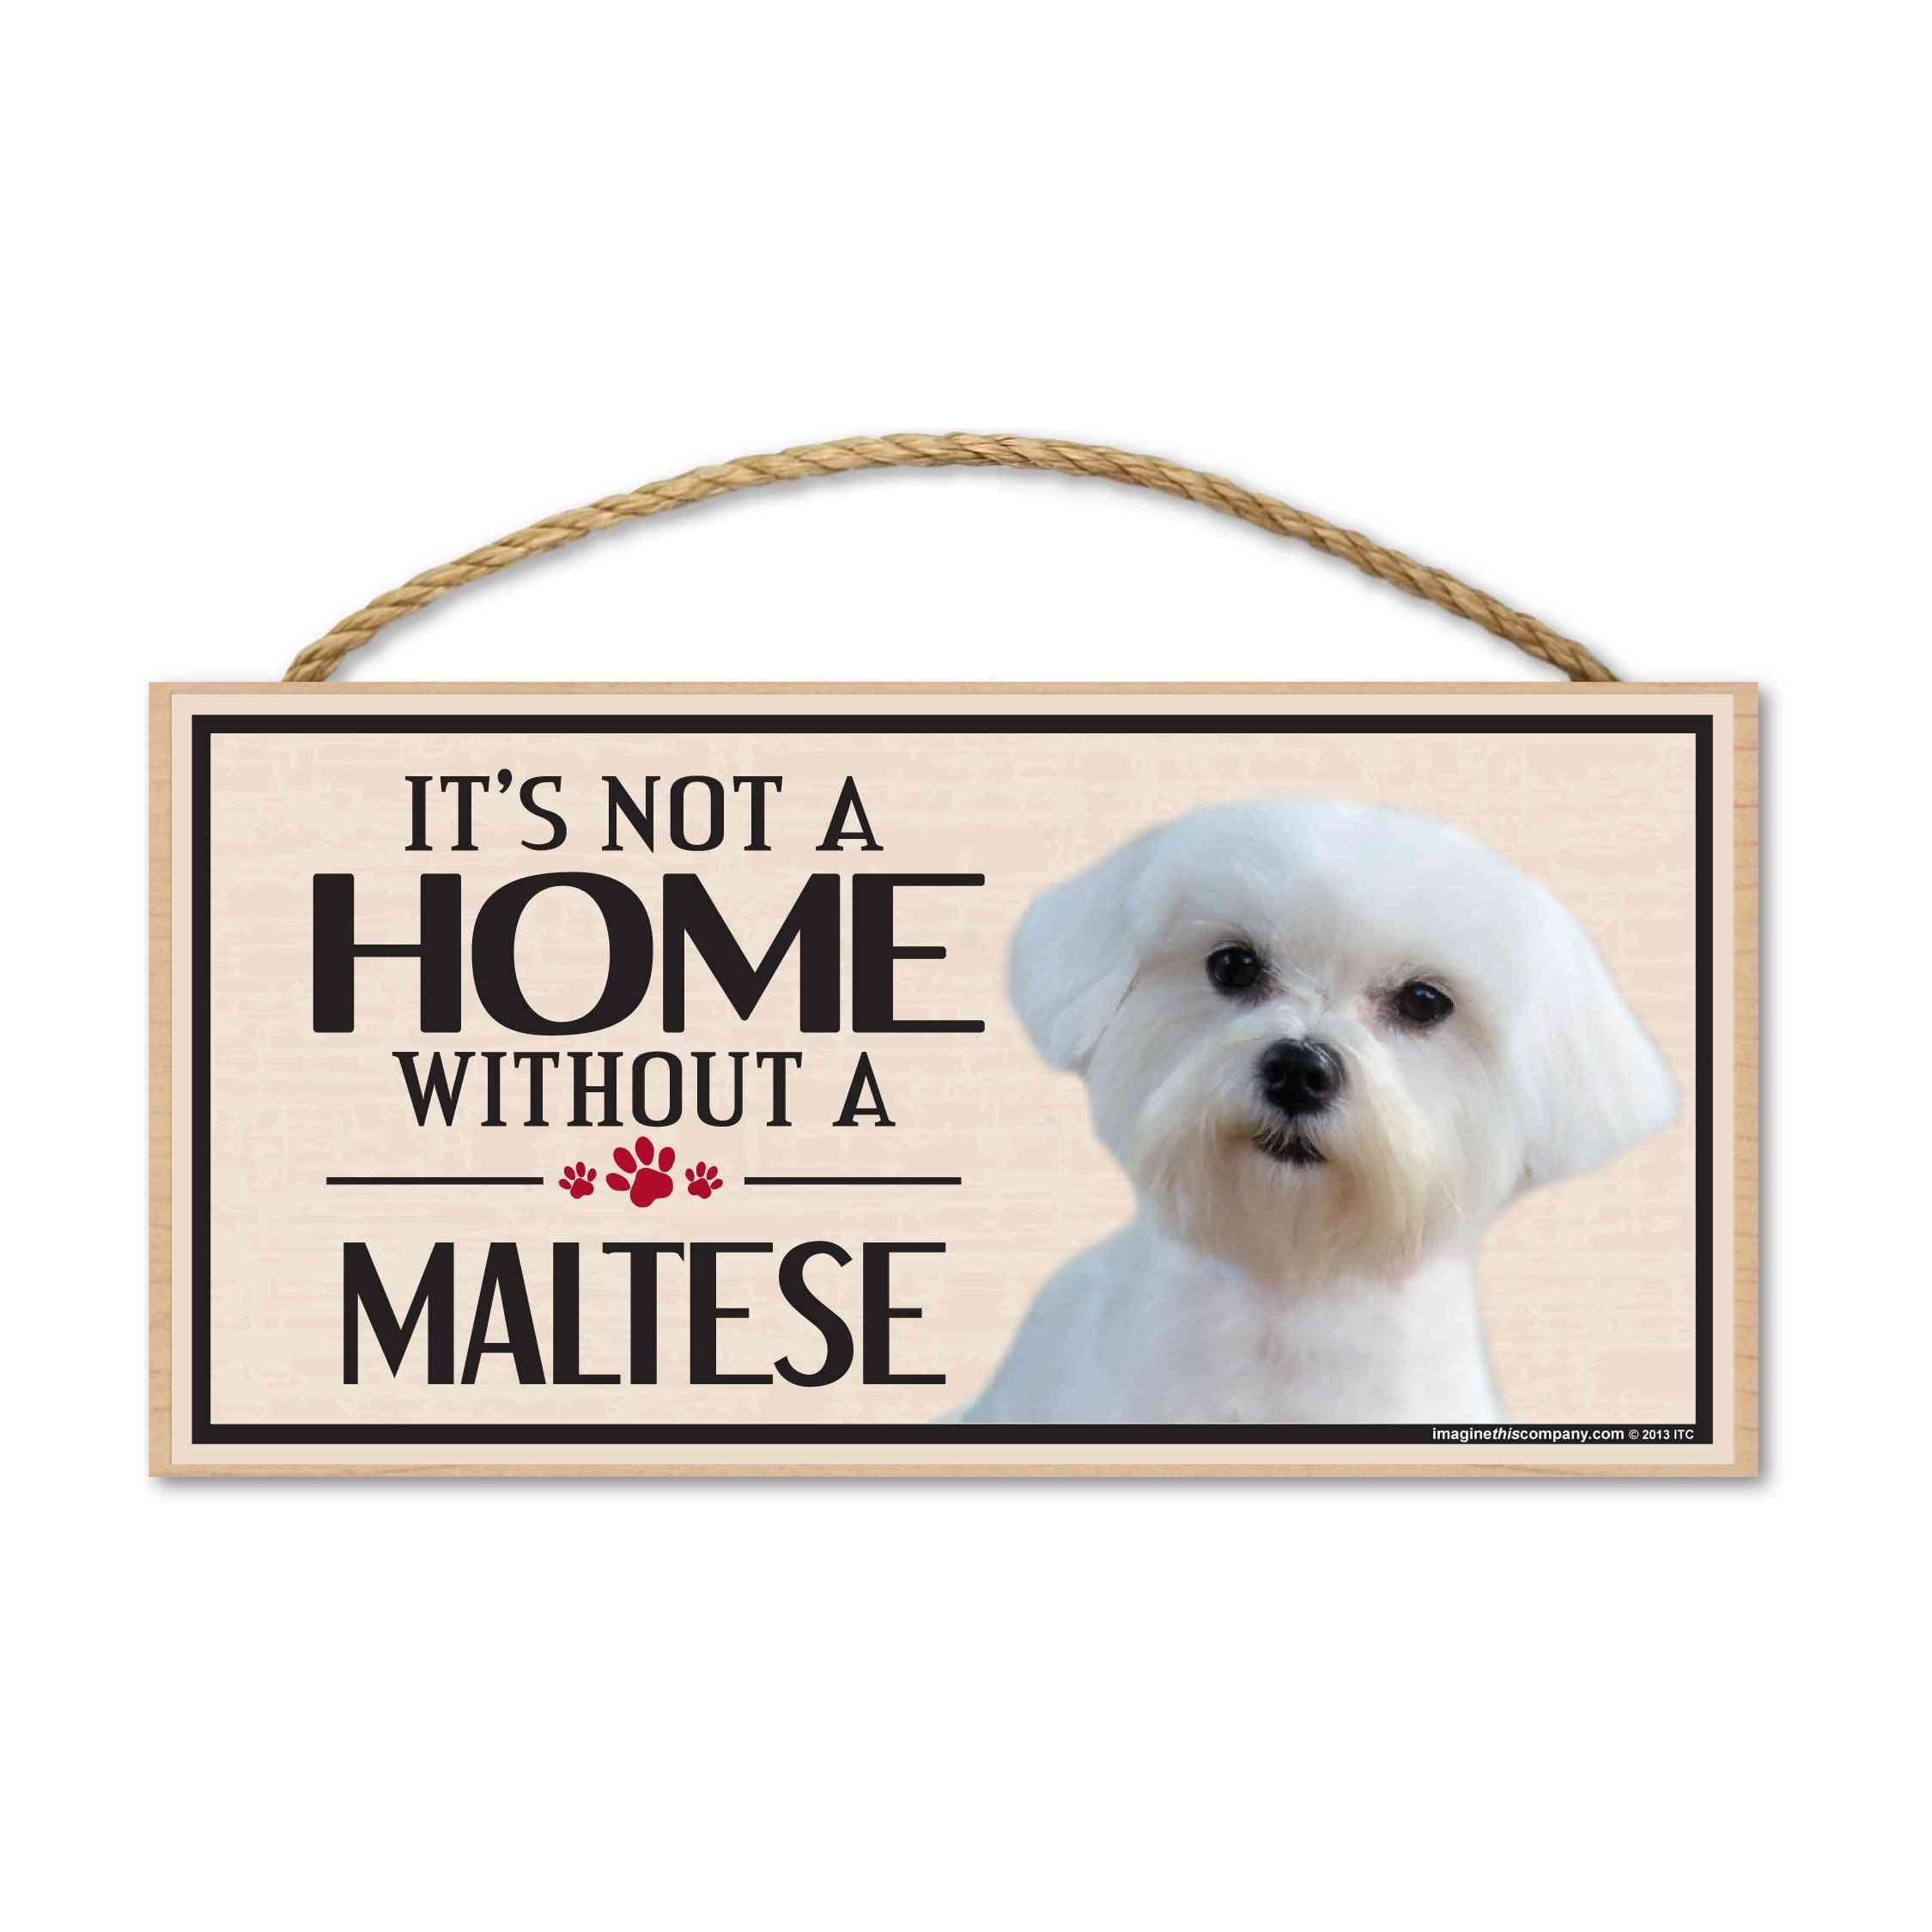 Sign, Wood, It's Not A Home Without A Maltese, 10